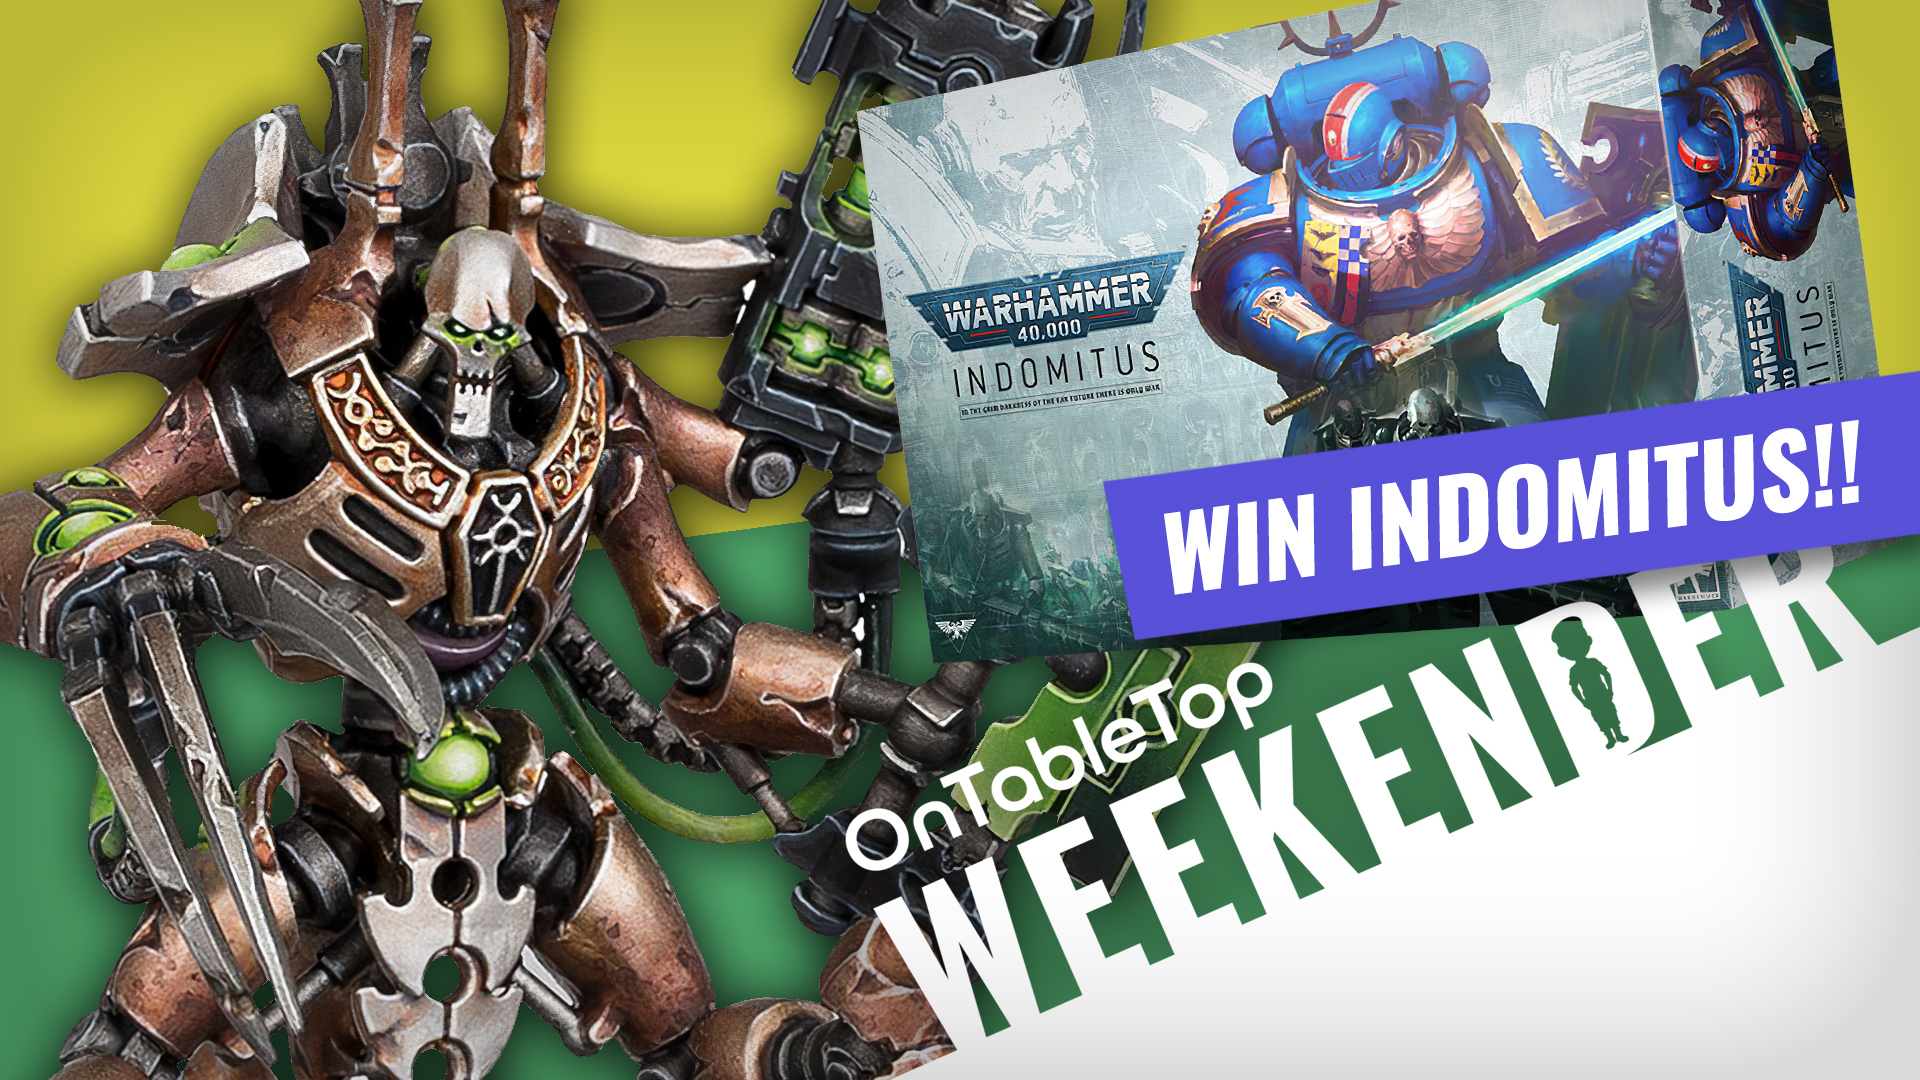 Weekender: WIN Warhammer 40K Indomitus + New Necrons & Space Marines; Epic Win Or Epic Fail?